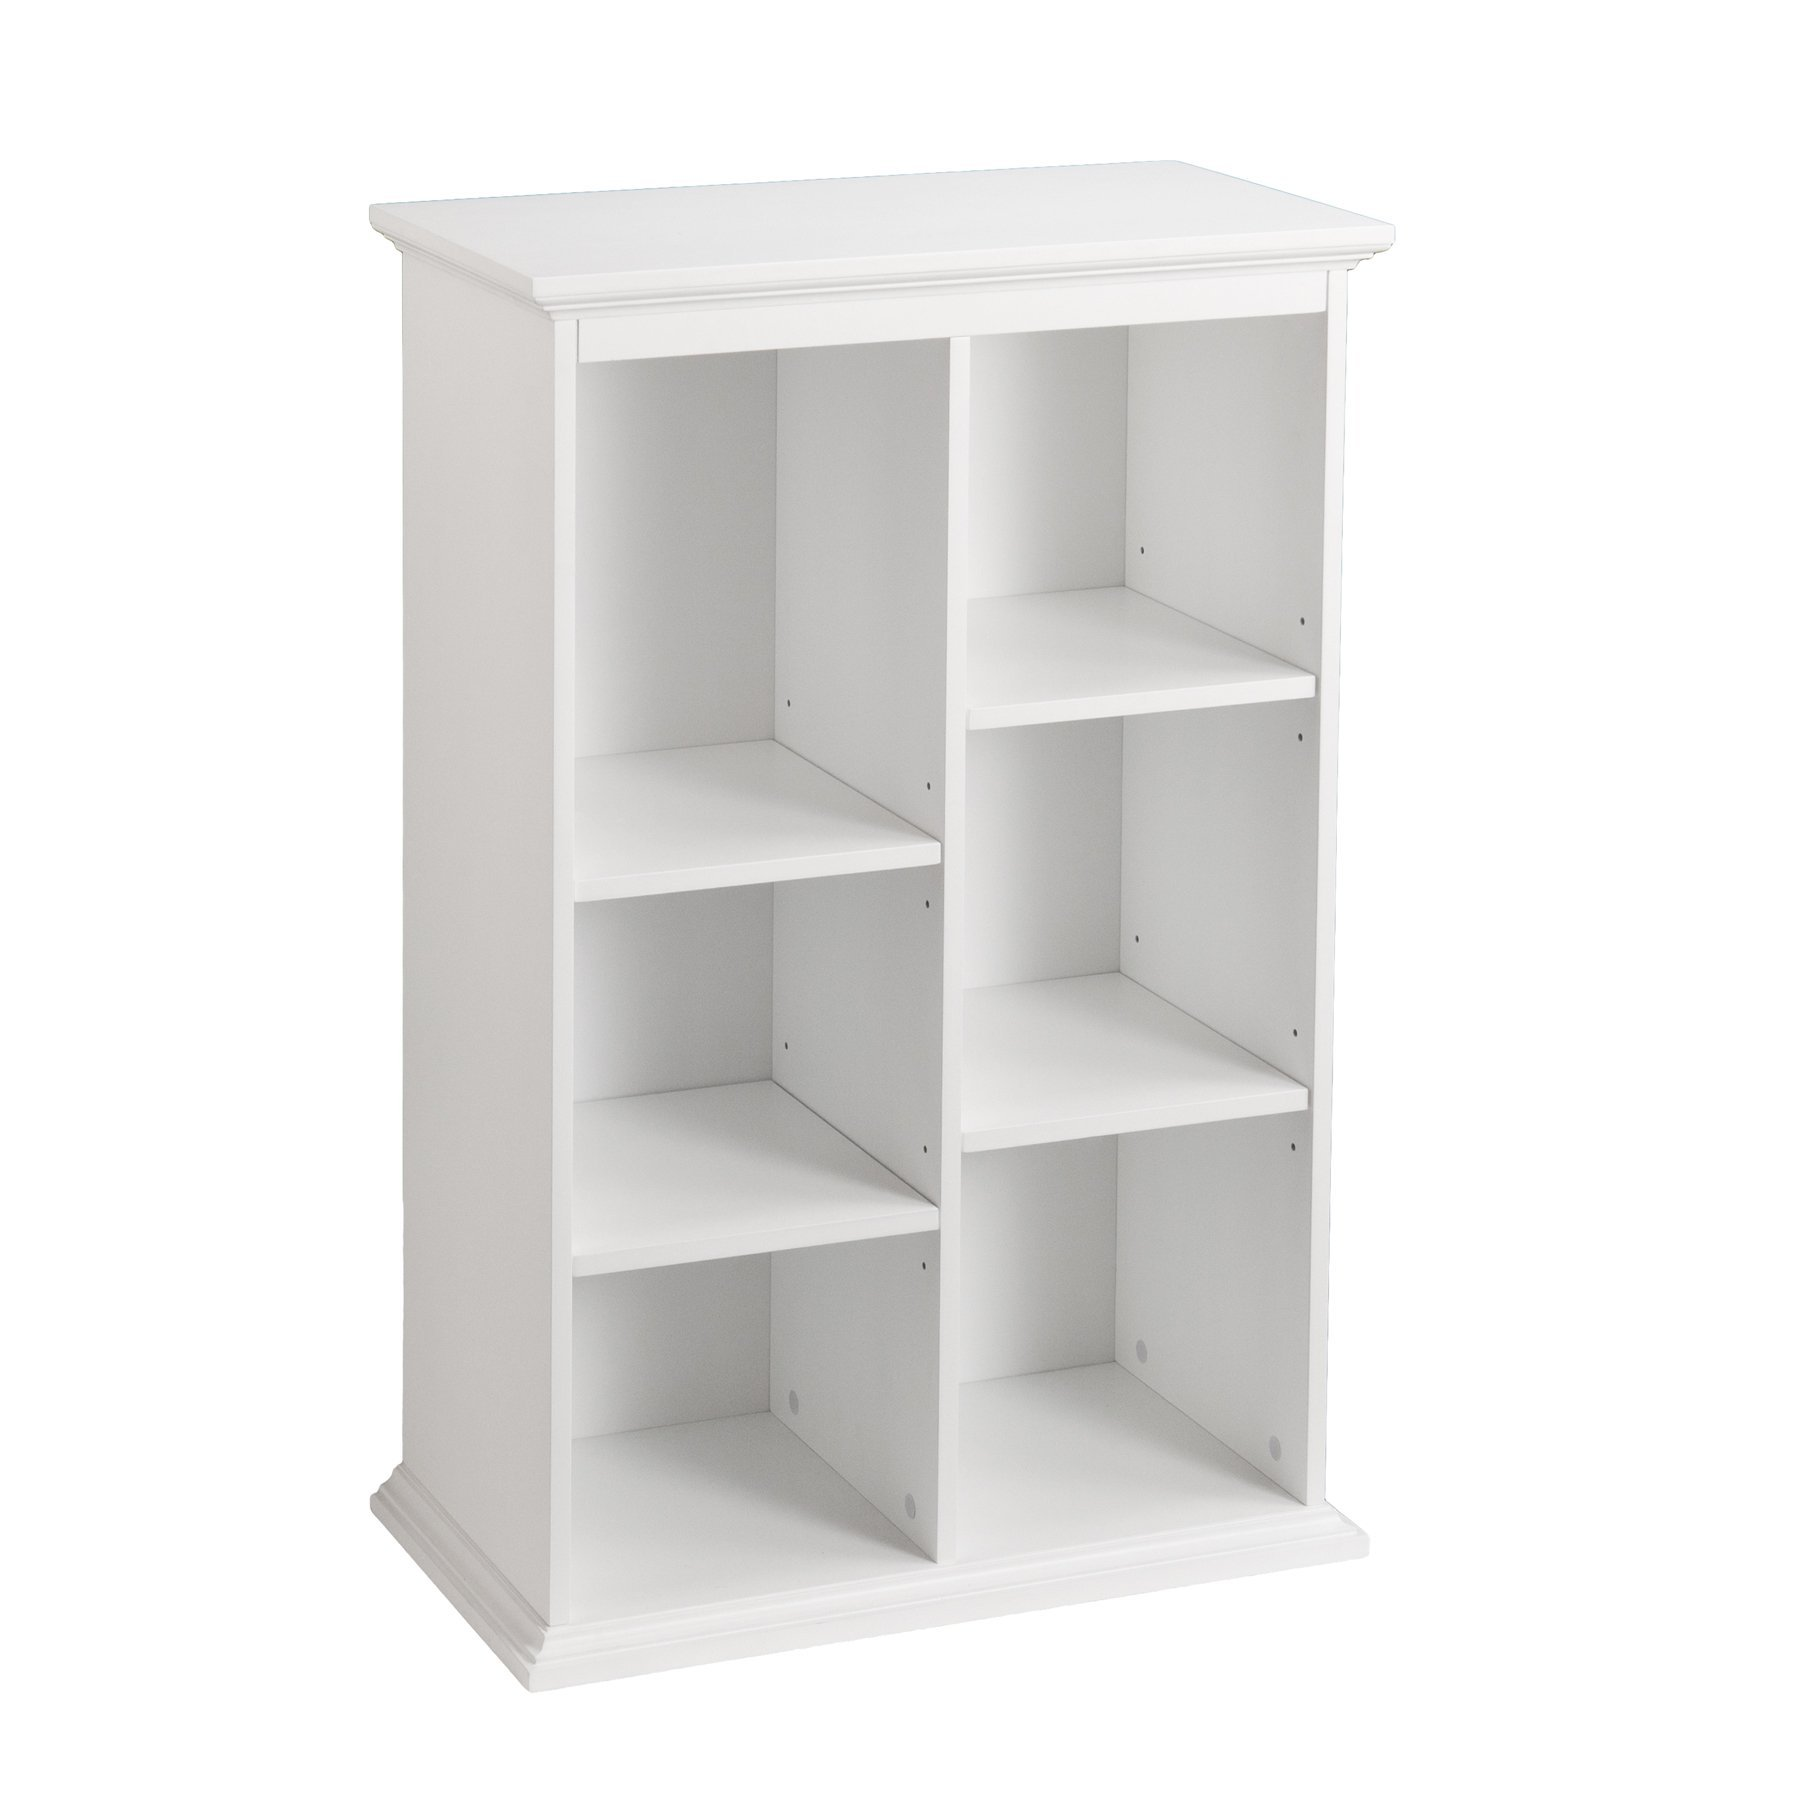 Modern, Transitional Manuel 45-Inch White Display Shelf with Four (4) Adjustable and Two (2) Fixed Shelves (OS3653HZ). Asymmetrical Design Bookshelf. Assembly Required